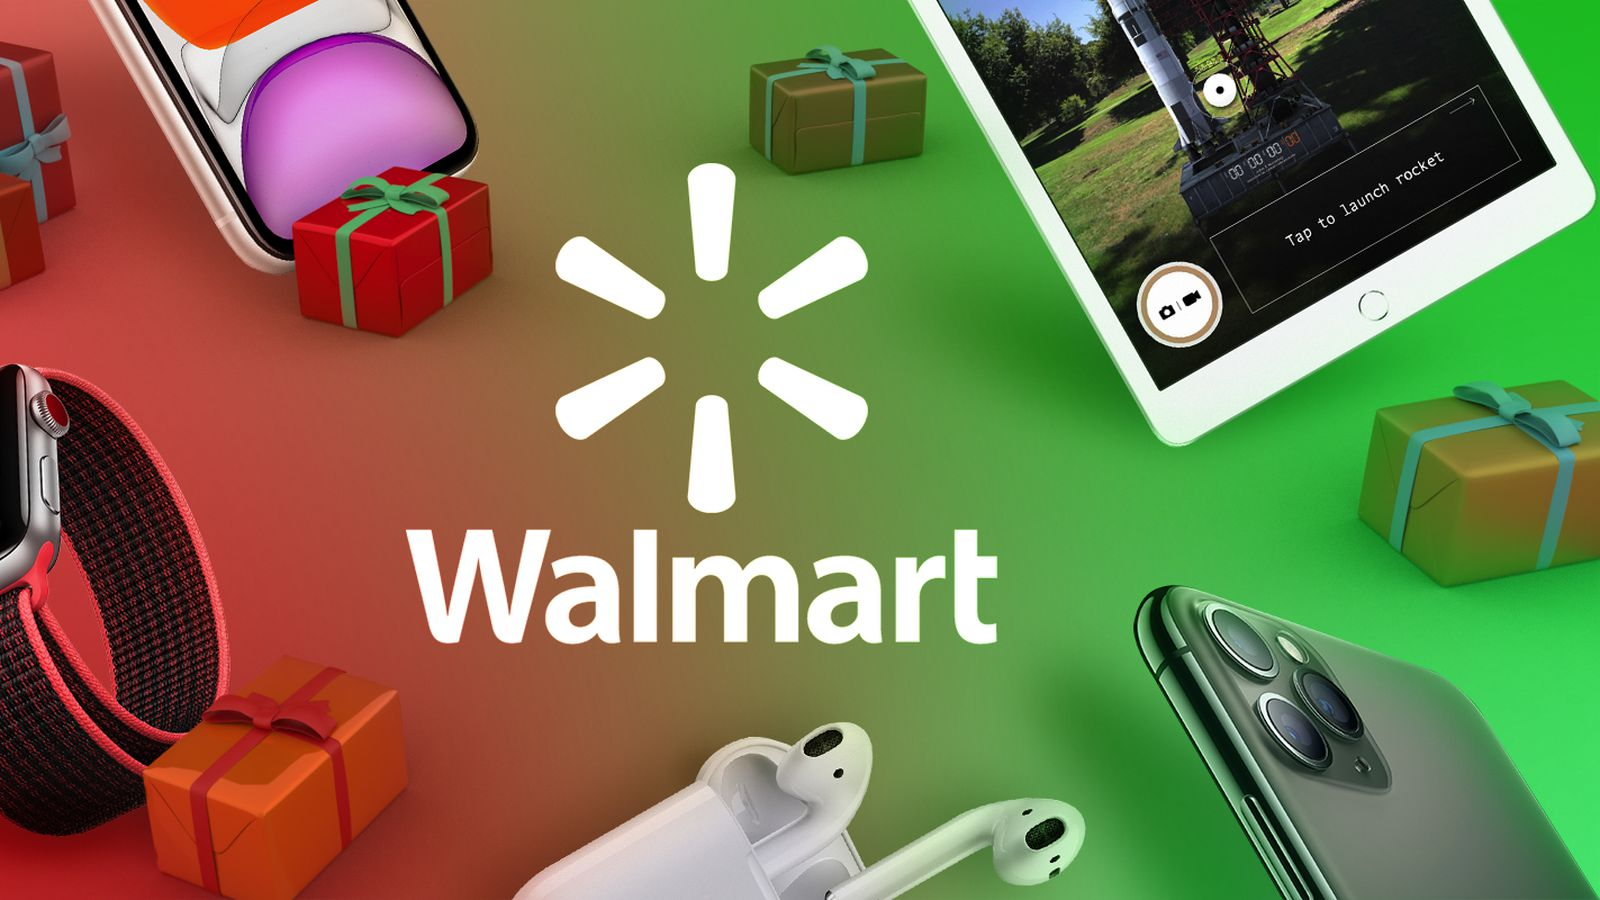 Black Friday Spotlight Walmart Will Offer Competitive Prices On Airpods Apple Watch Series 3 And 10 2 Inch Ipad Macrumors